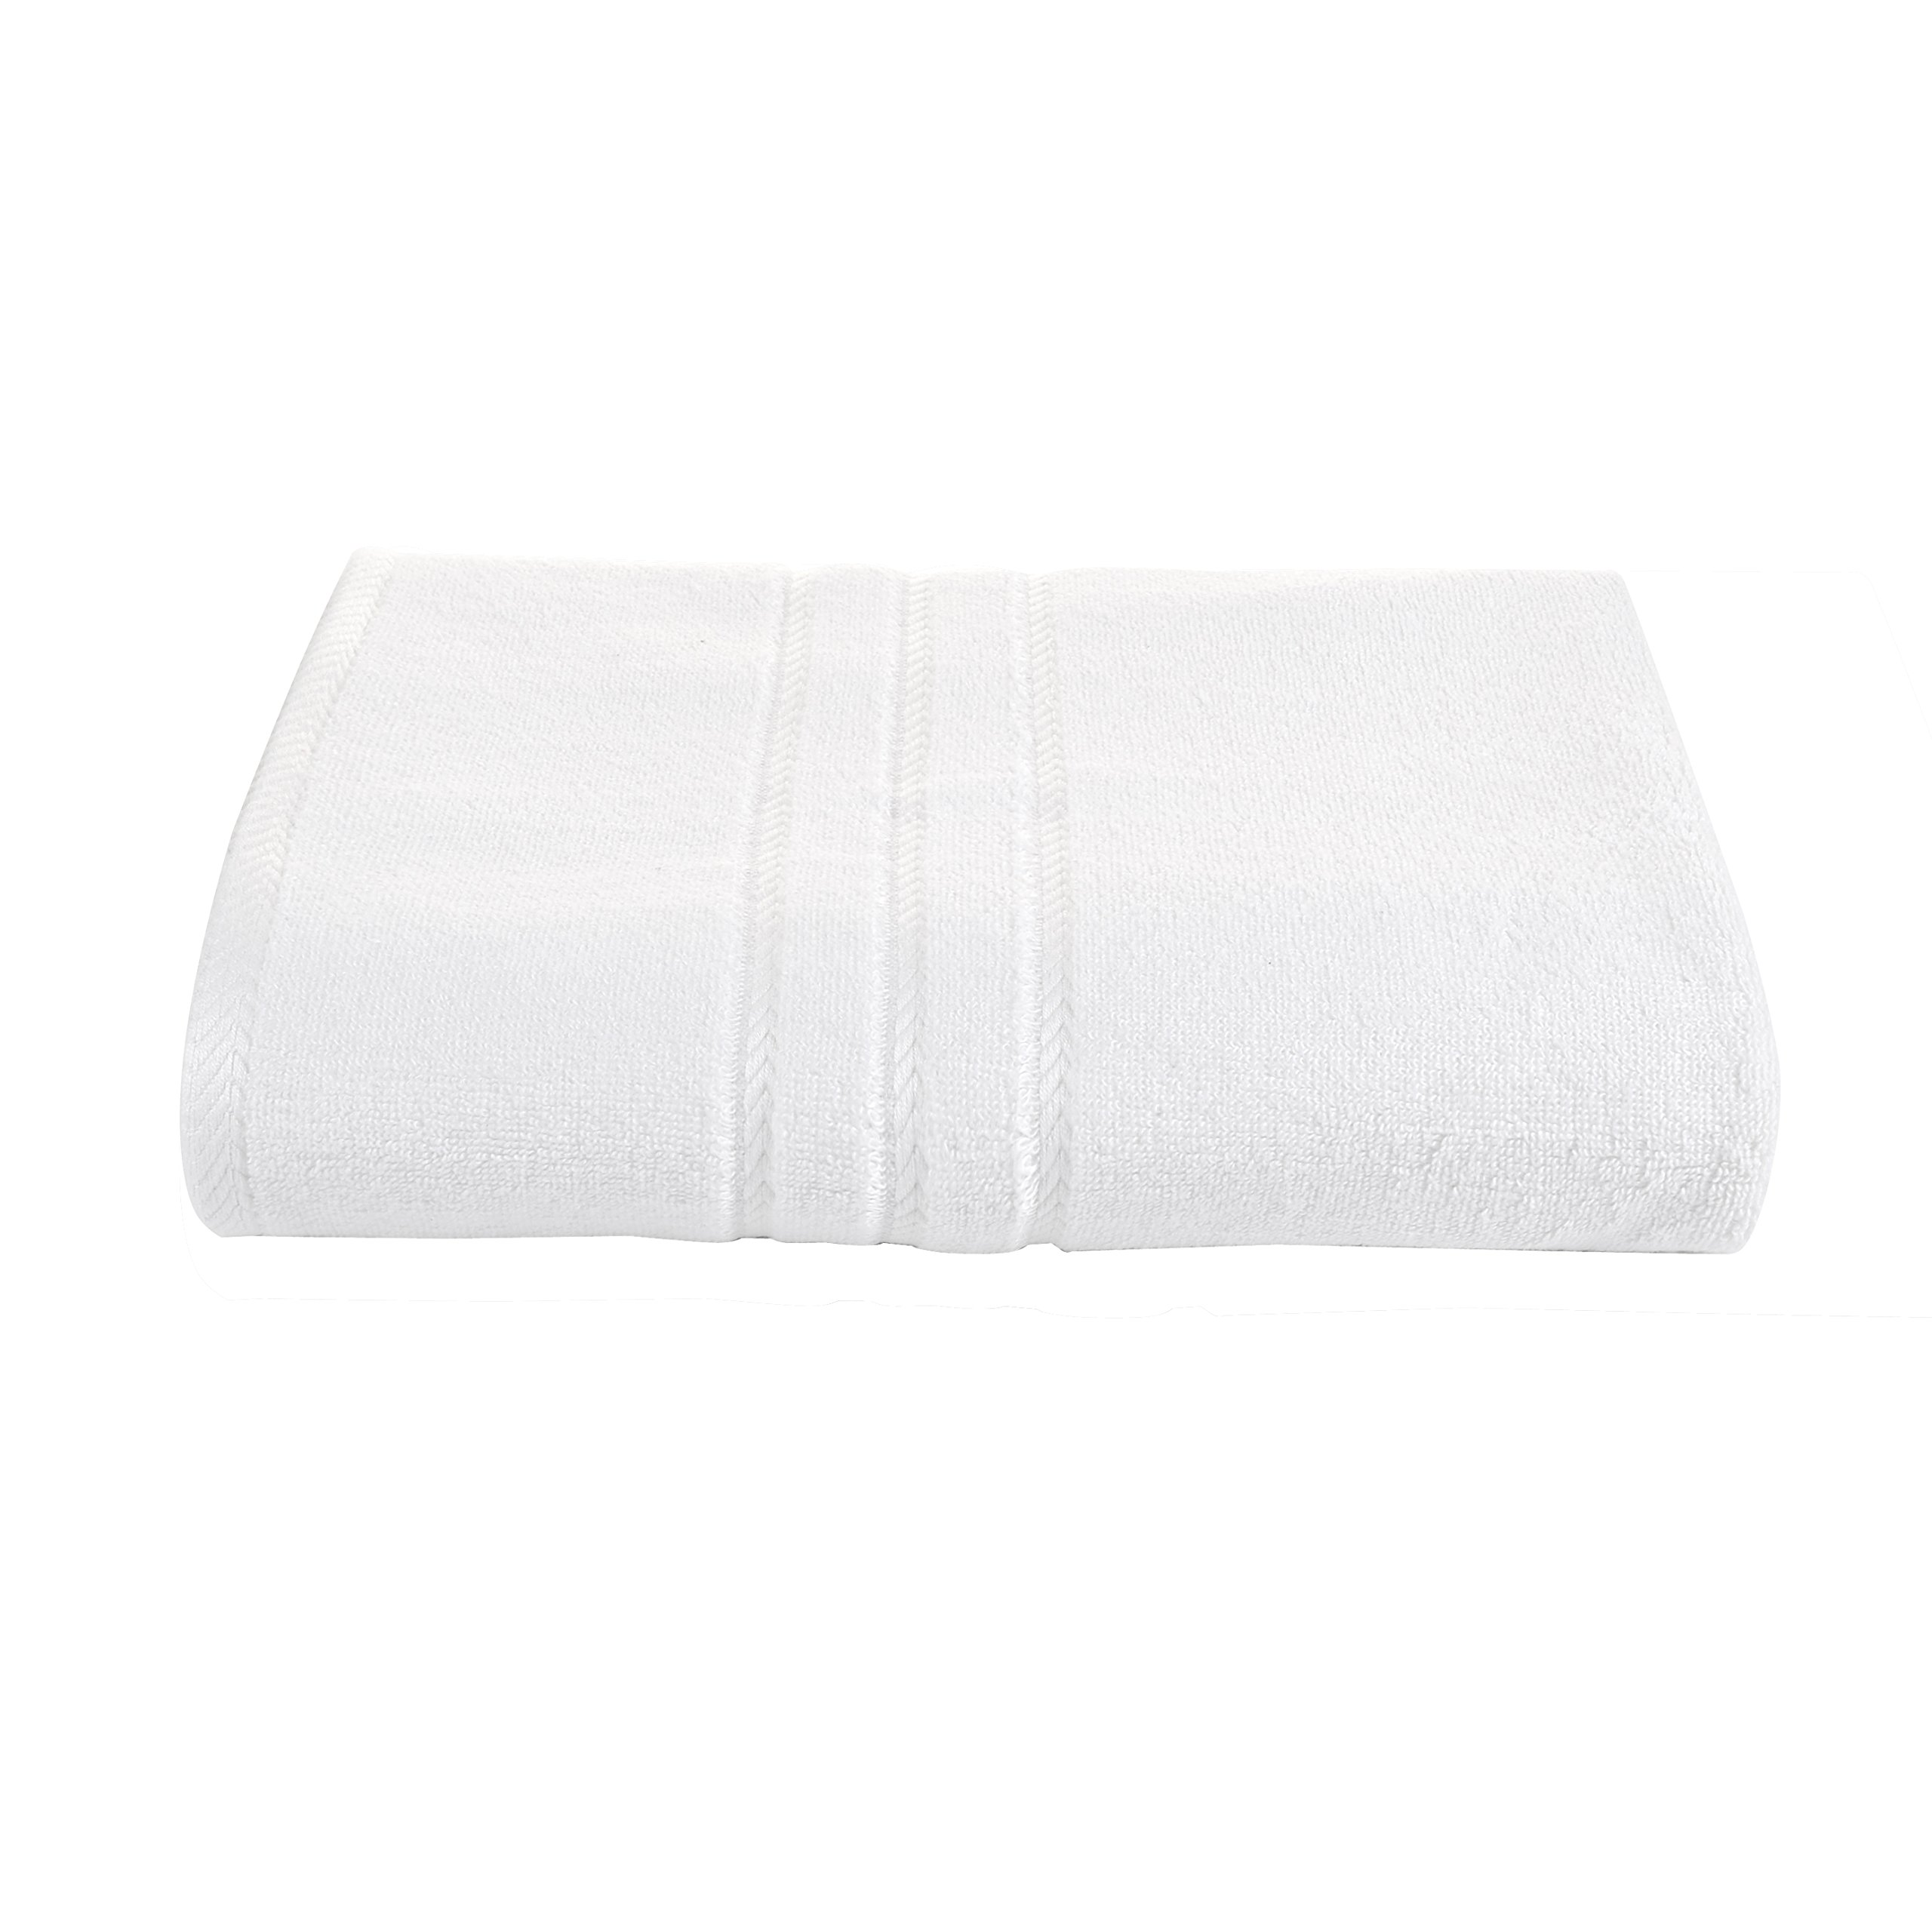 White Bath Towels Sets -Pack of 4 -Heavy Weight ,Oversize 28 X 55 Inch, 600 GSM, Made by Premium Bamboo Cotton,Ultra Soft for Everyday Use by Bamboo Classic (Image #5)